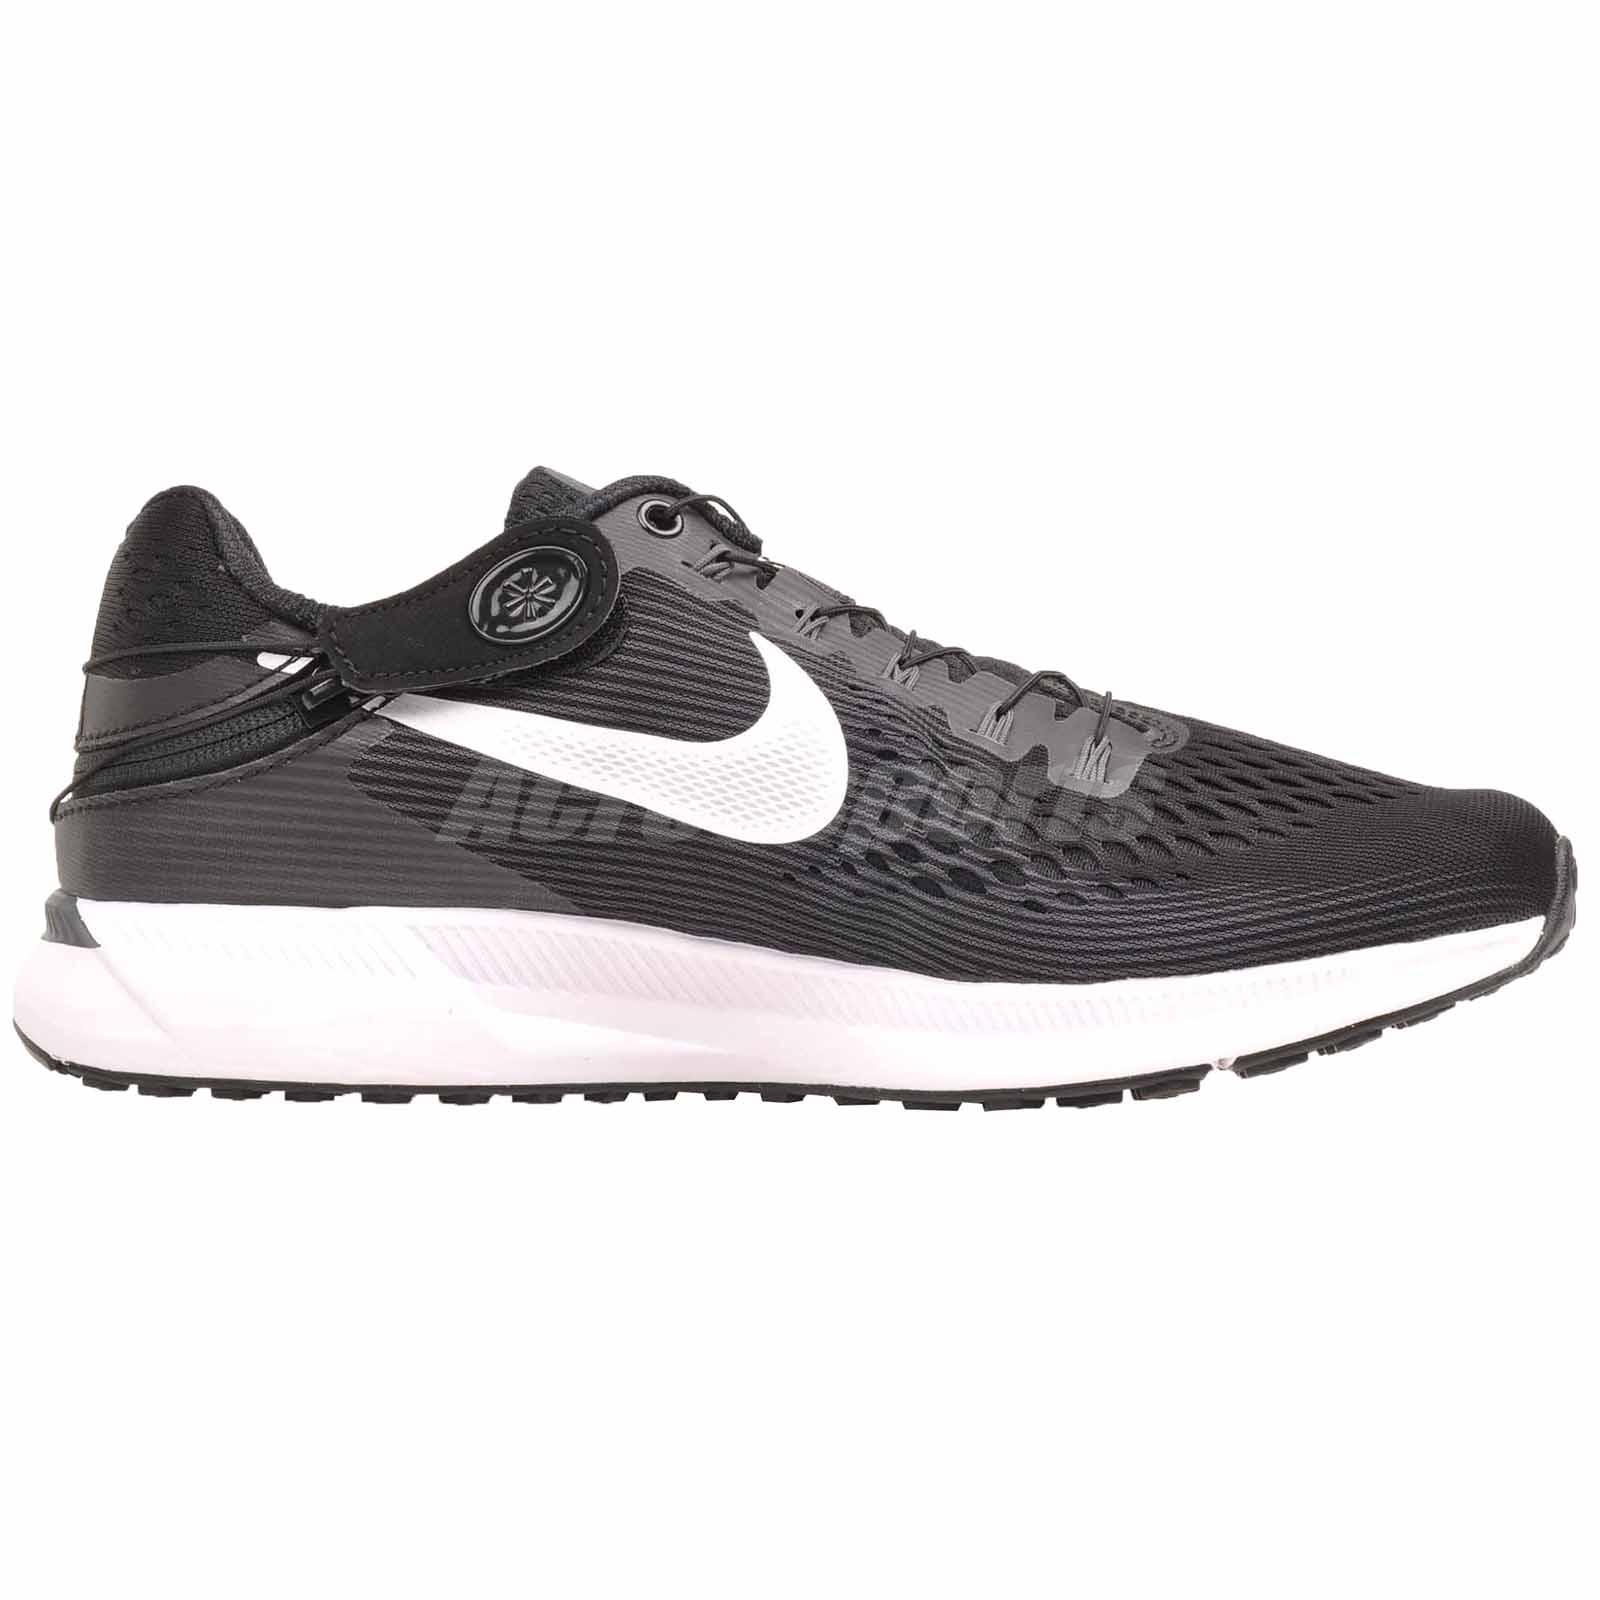 19405384a8984 Nike Zoom Pegasus 34 Flyease Running Mens Shoes Black White Grey ...